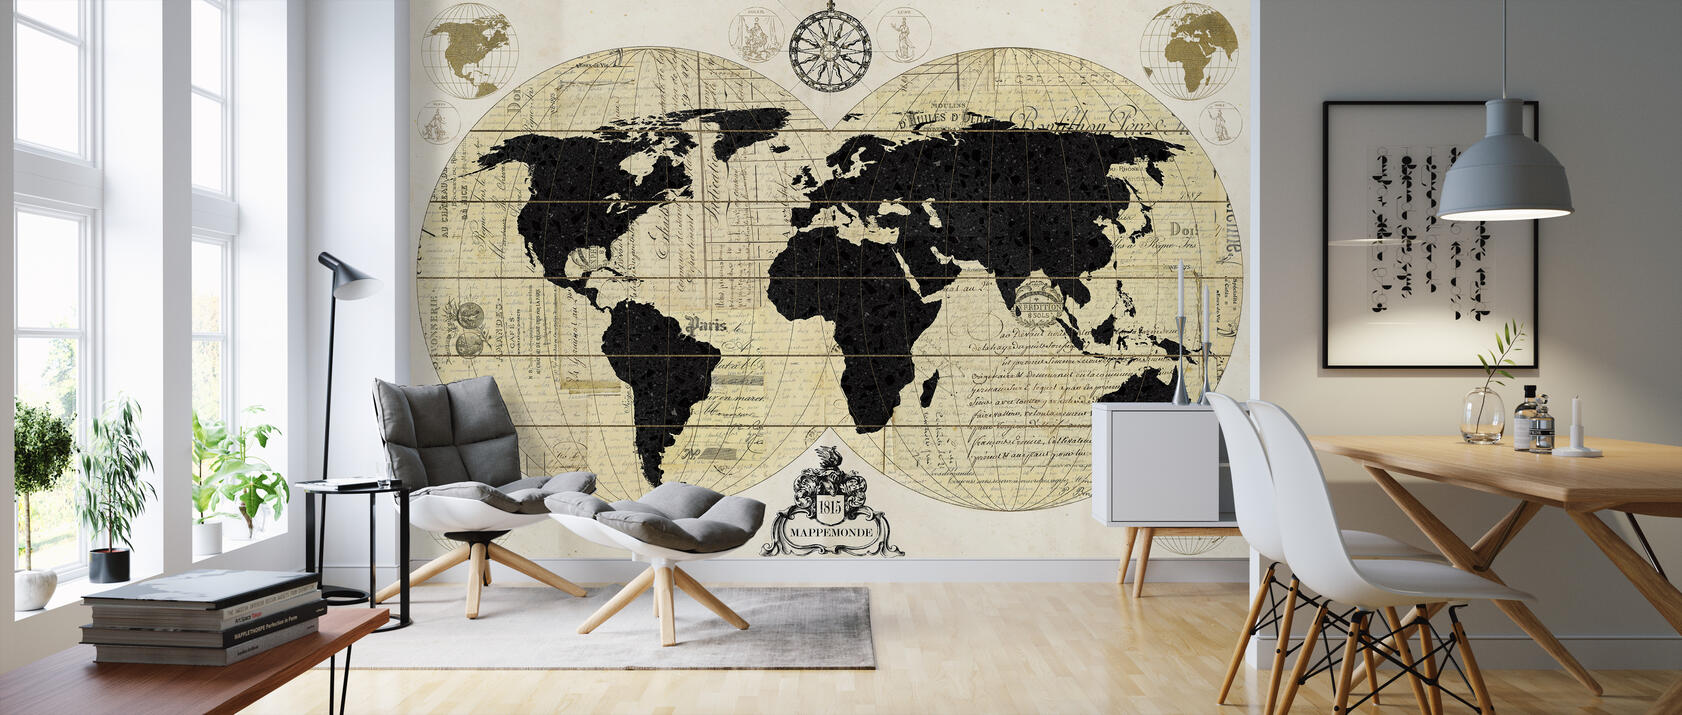 vintage world map kostenlos gelieferte fototapete von. Black Bedroom Furniture Sets. Home Design Ideas